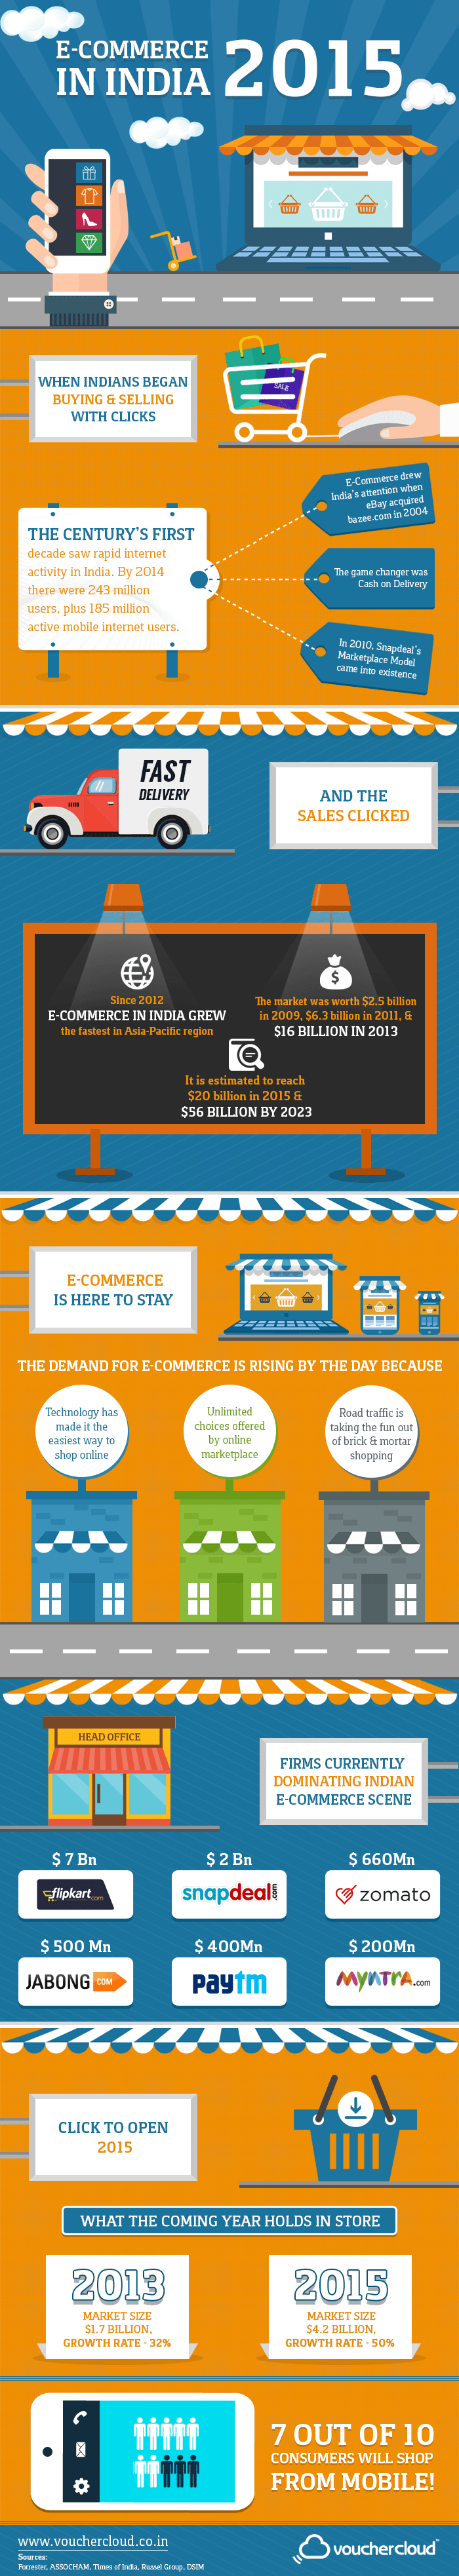 Ecommerce growth in India 2015